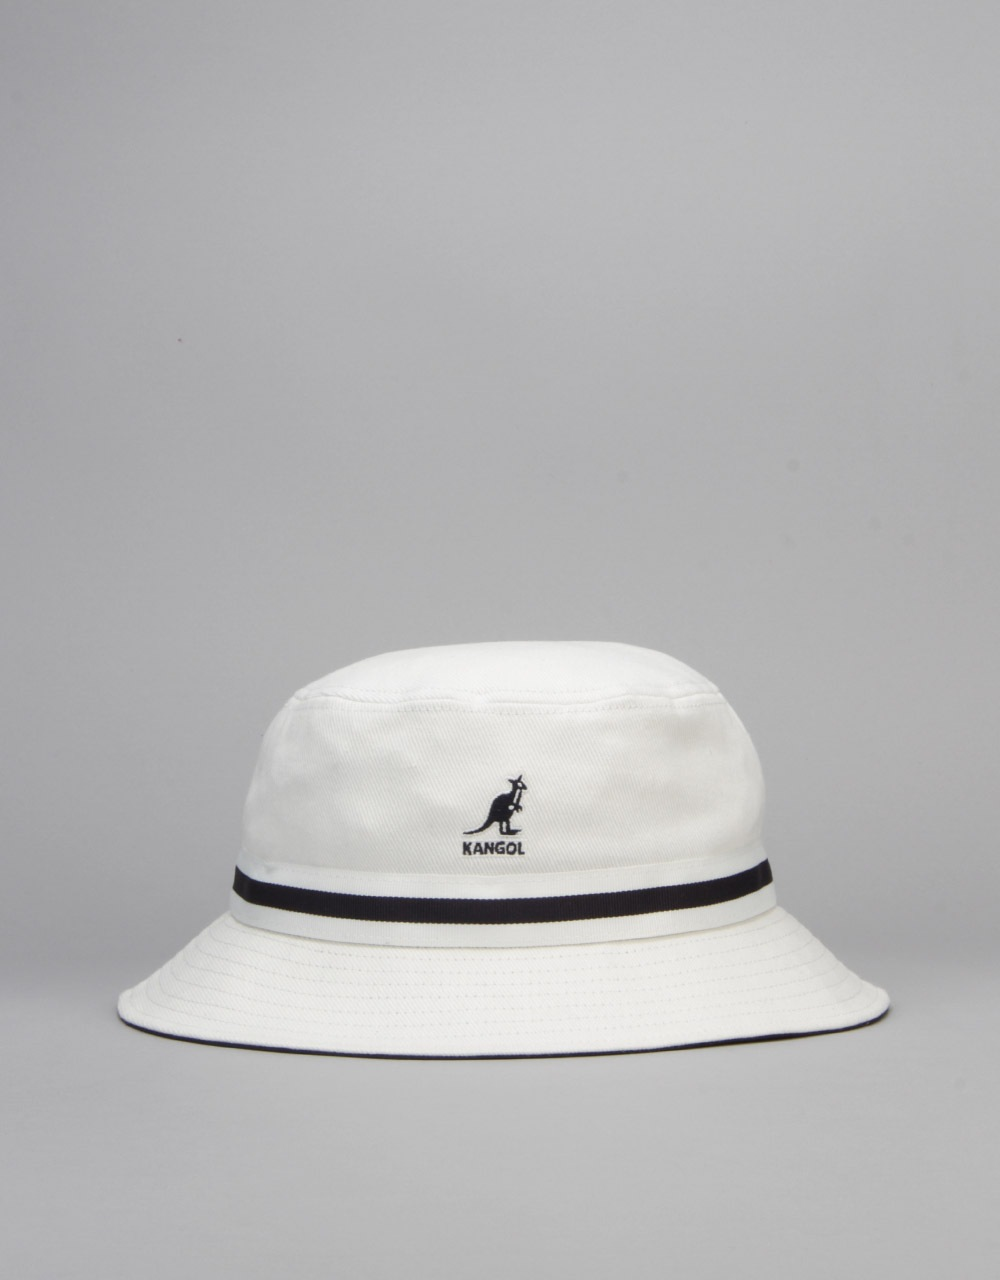 Kangol Stripe Lahinch Bucket Hat - White  c11873e58499